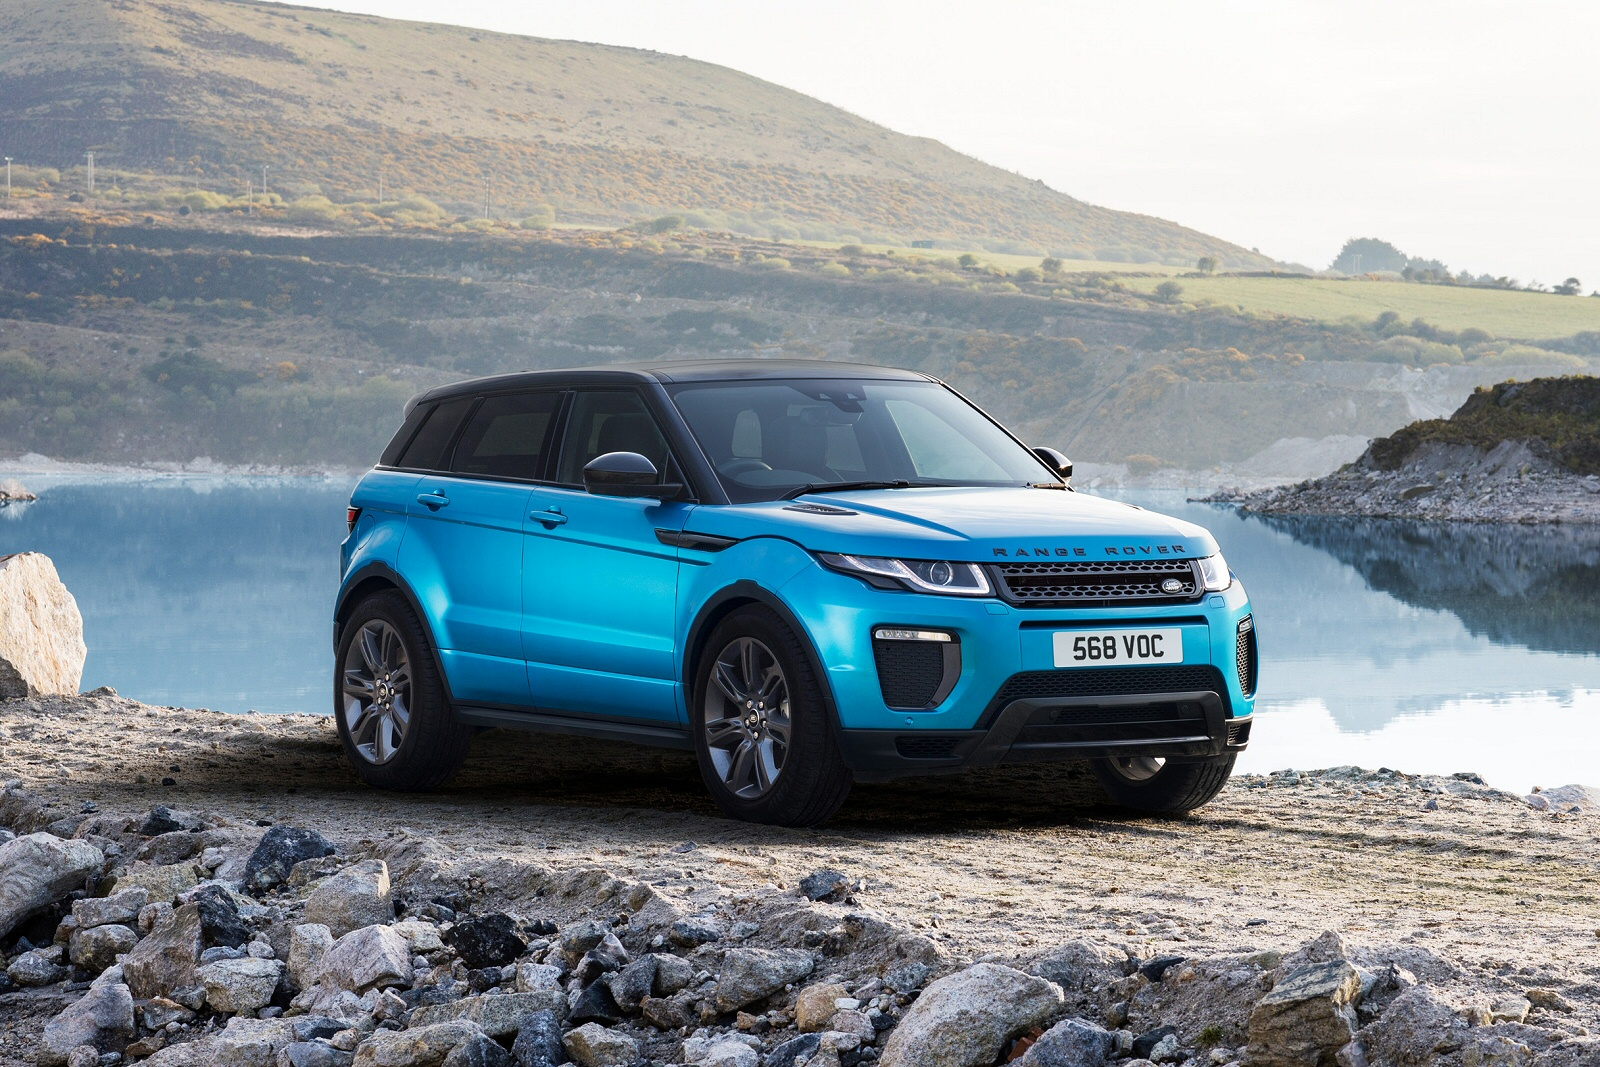 Top 5 Features of the Range Rover Evoque